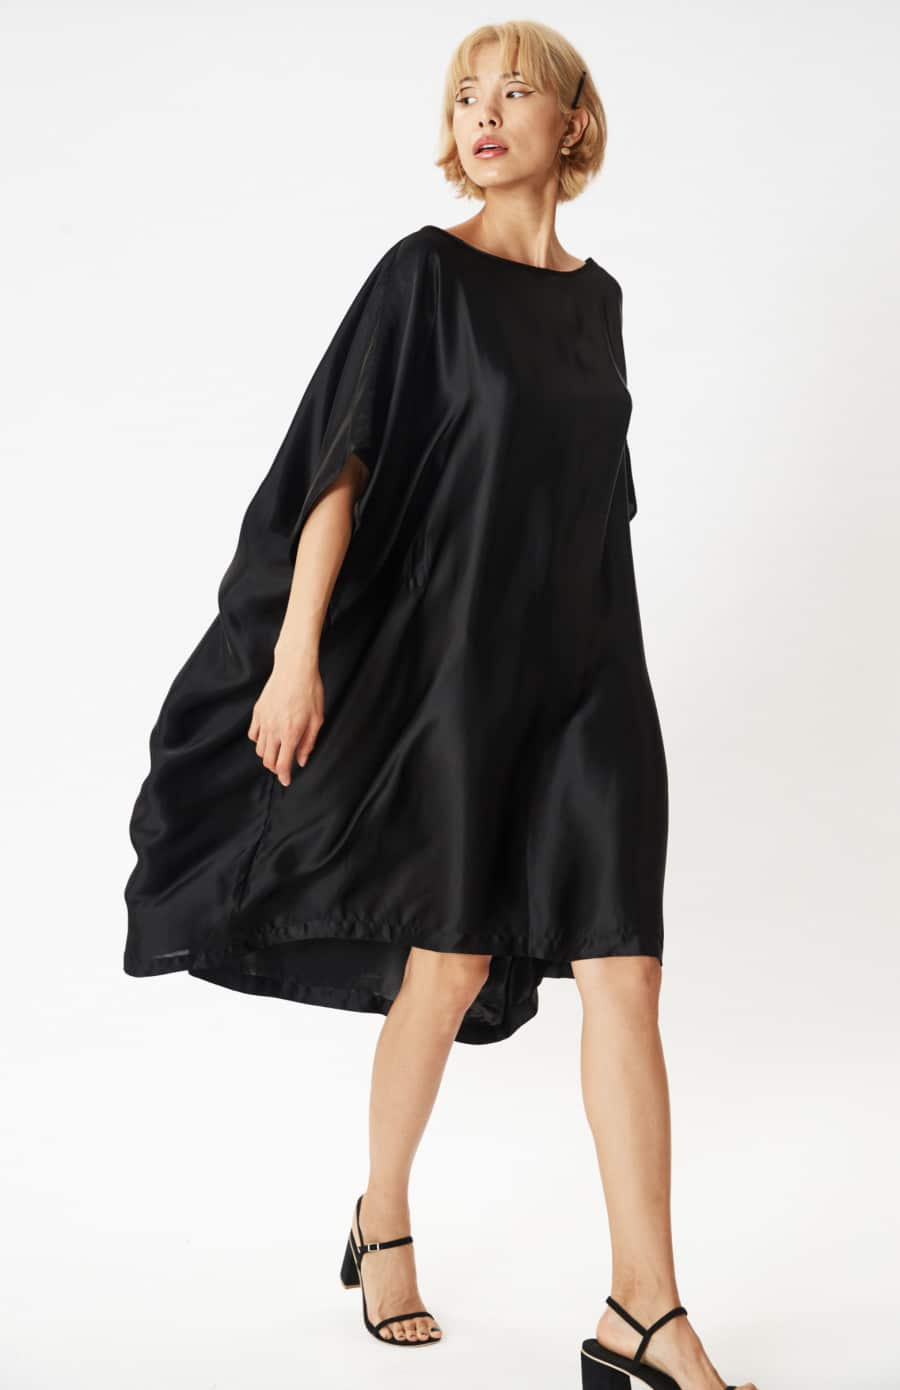 The Most Beautiful Eco Friendly And Ethical Dresses For